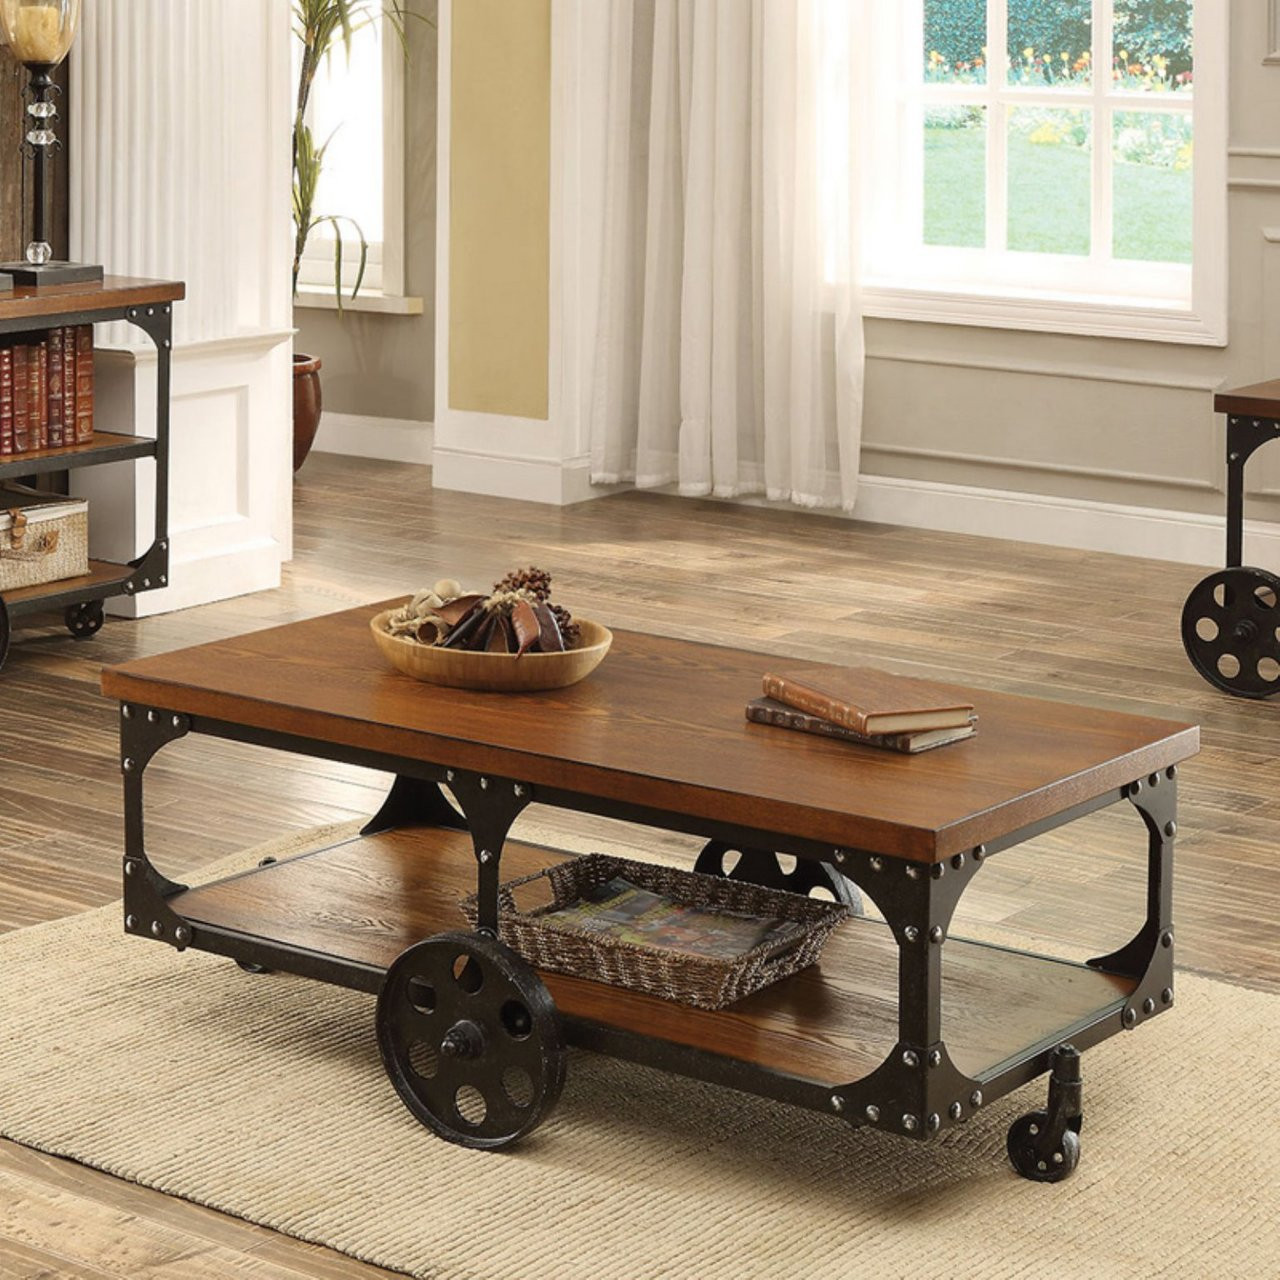 - Rustic Brown Rectangular Cocktail Table With Wheels